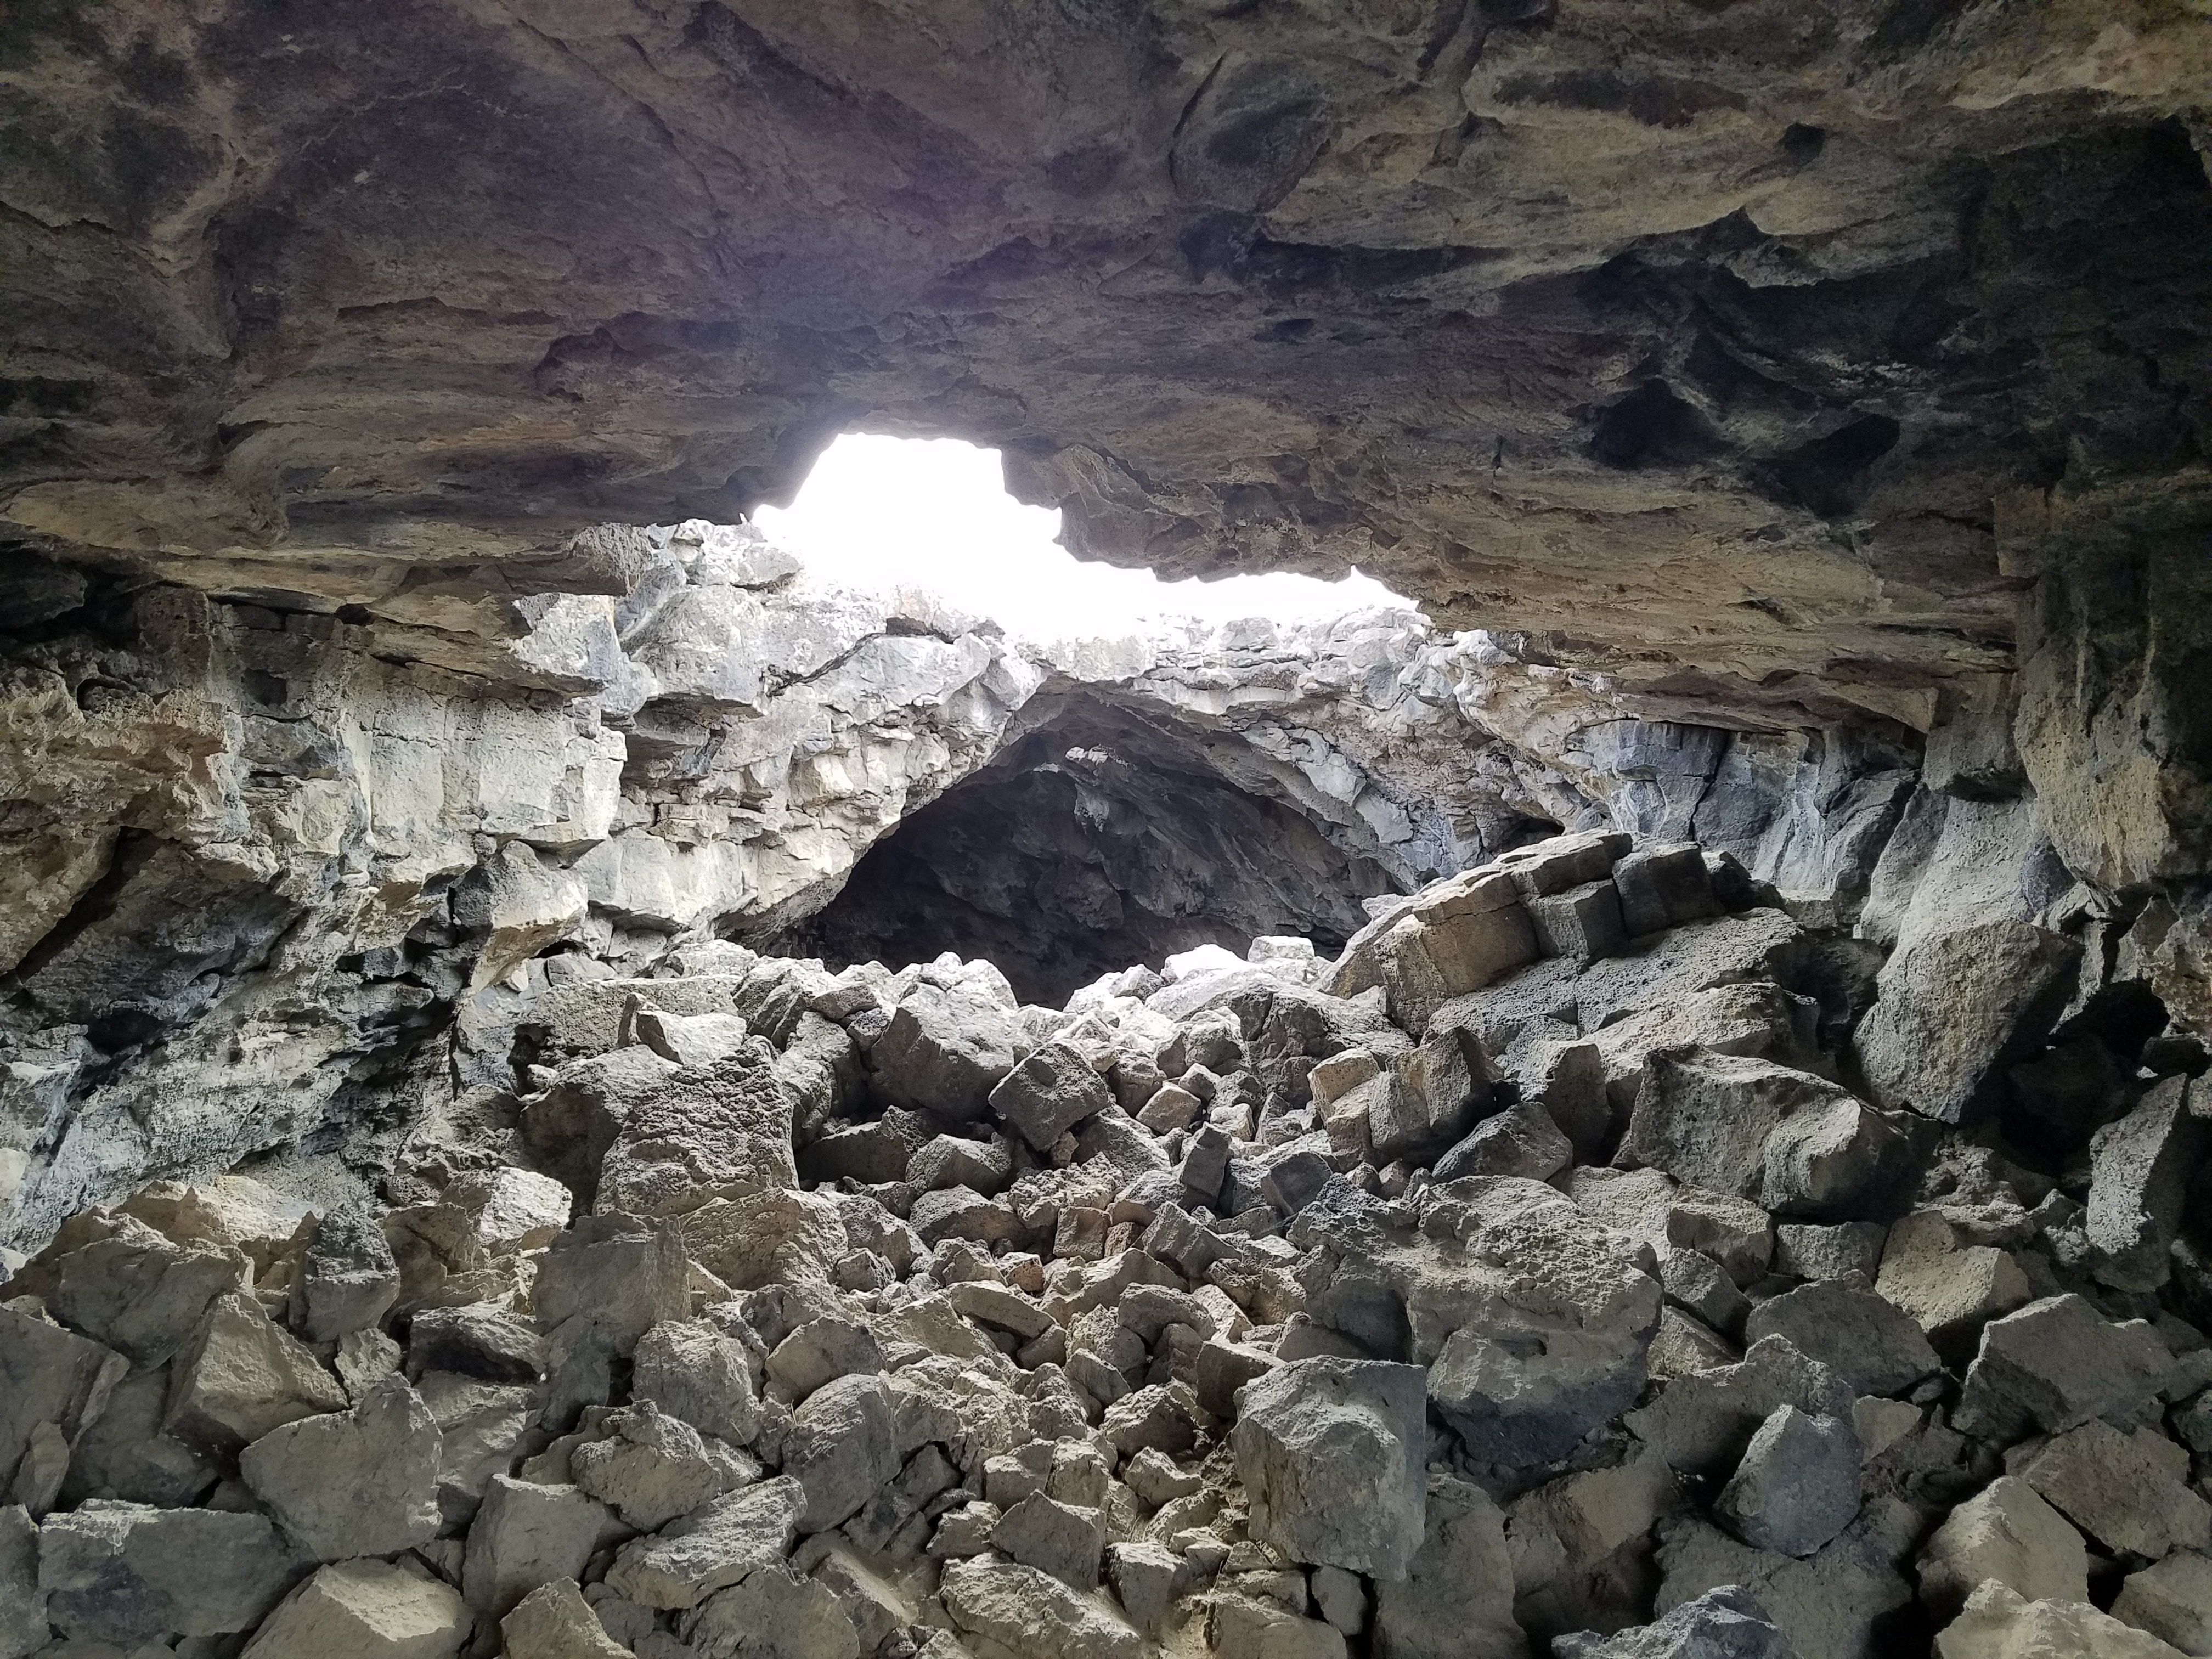 A crumbling lava tube from the Tabernacle Hill Cinder Cone Volcano in Utah